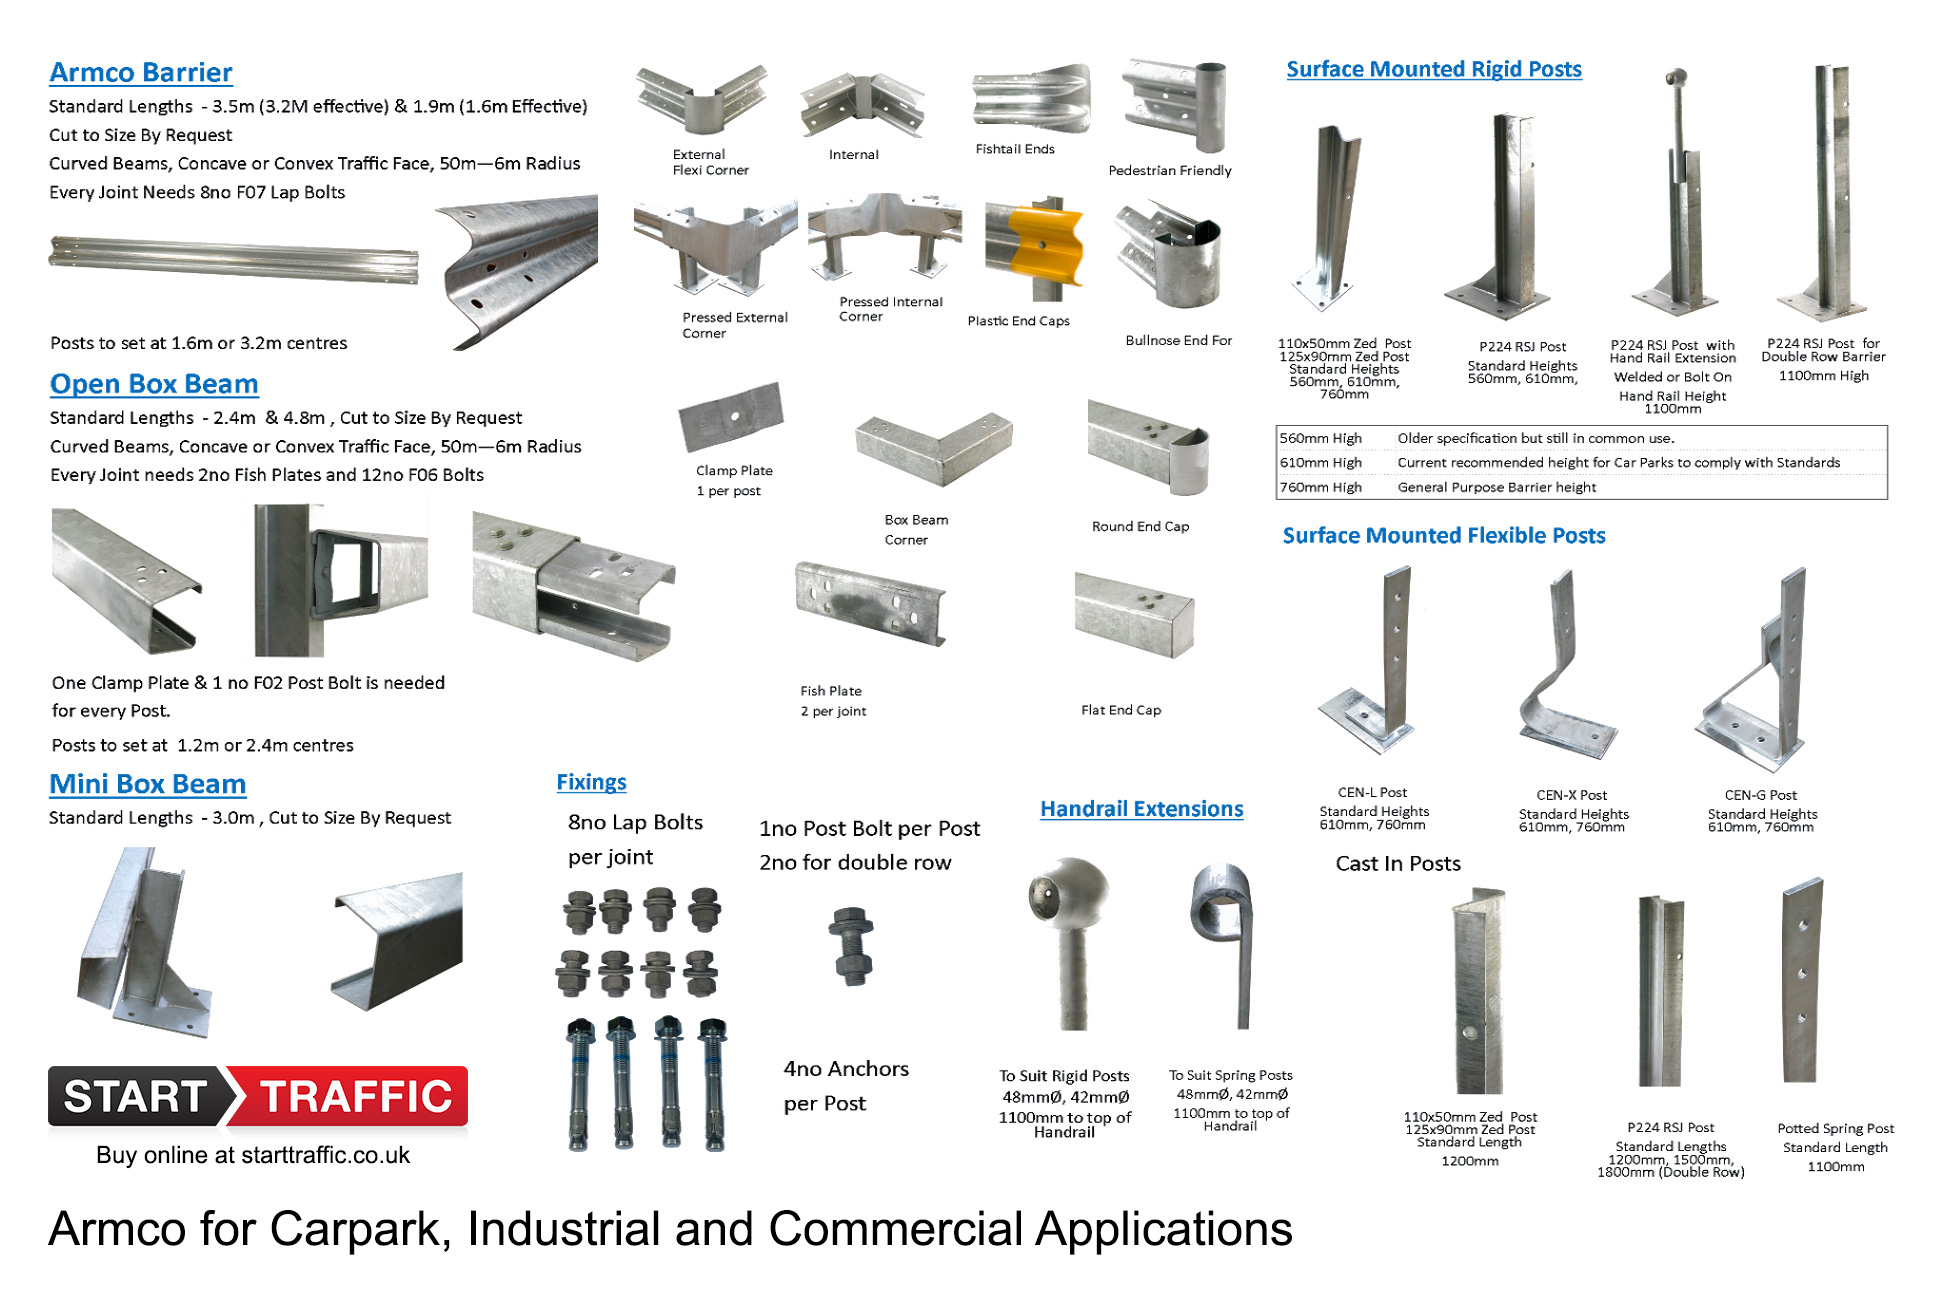 The Full Armco Range of Products